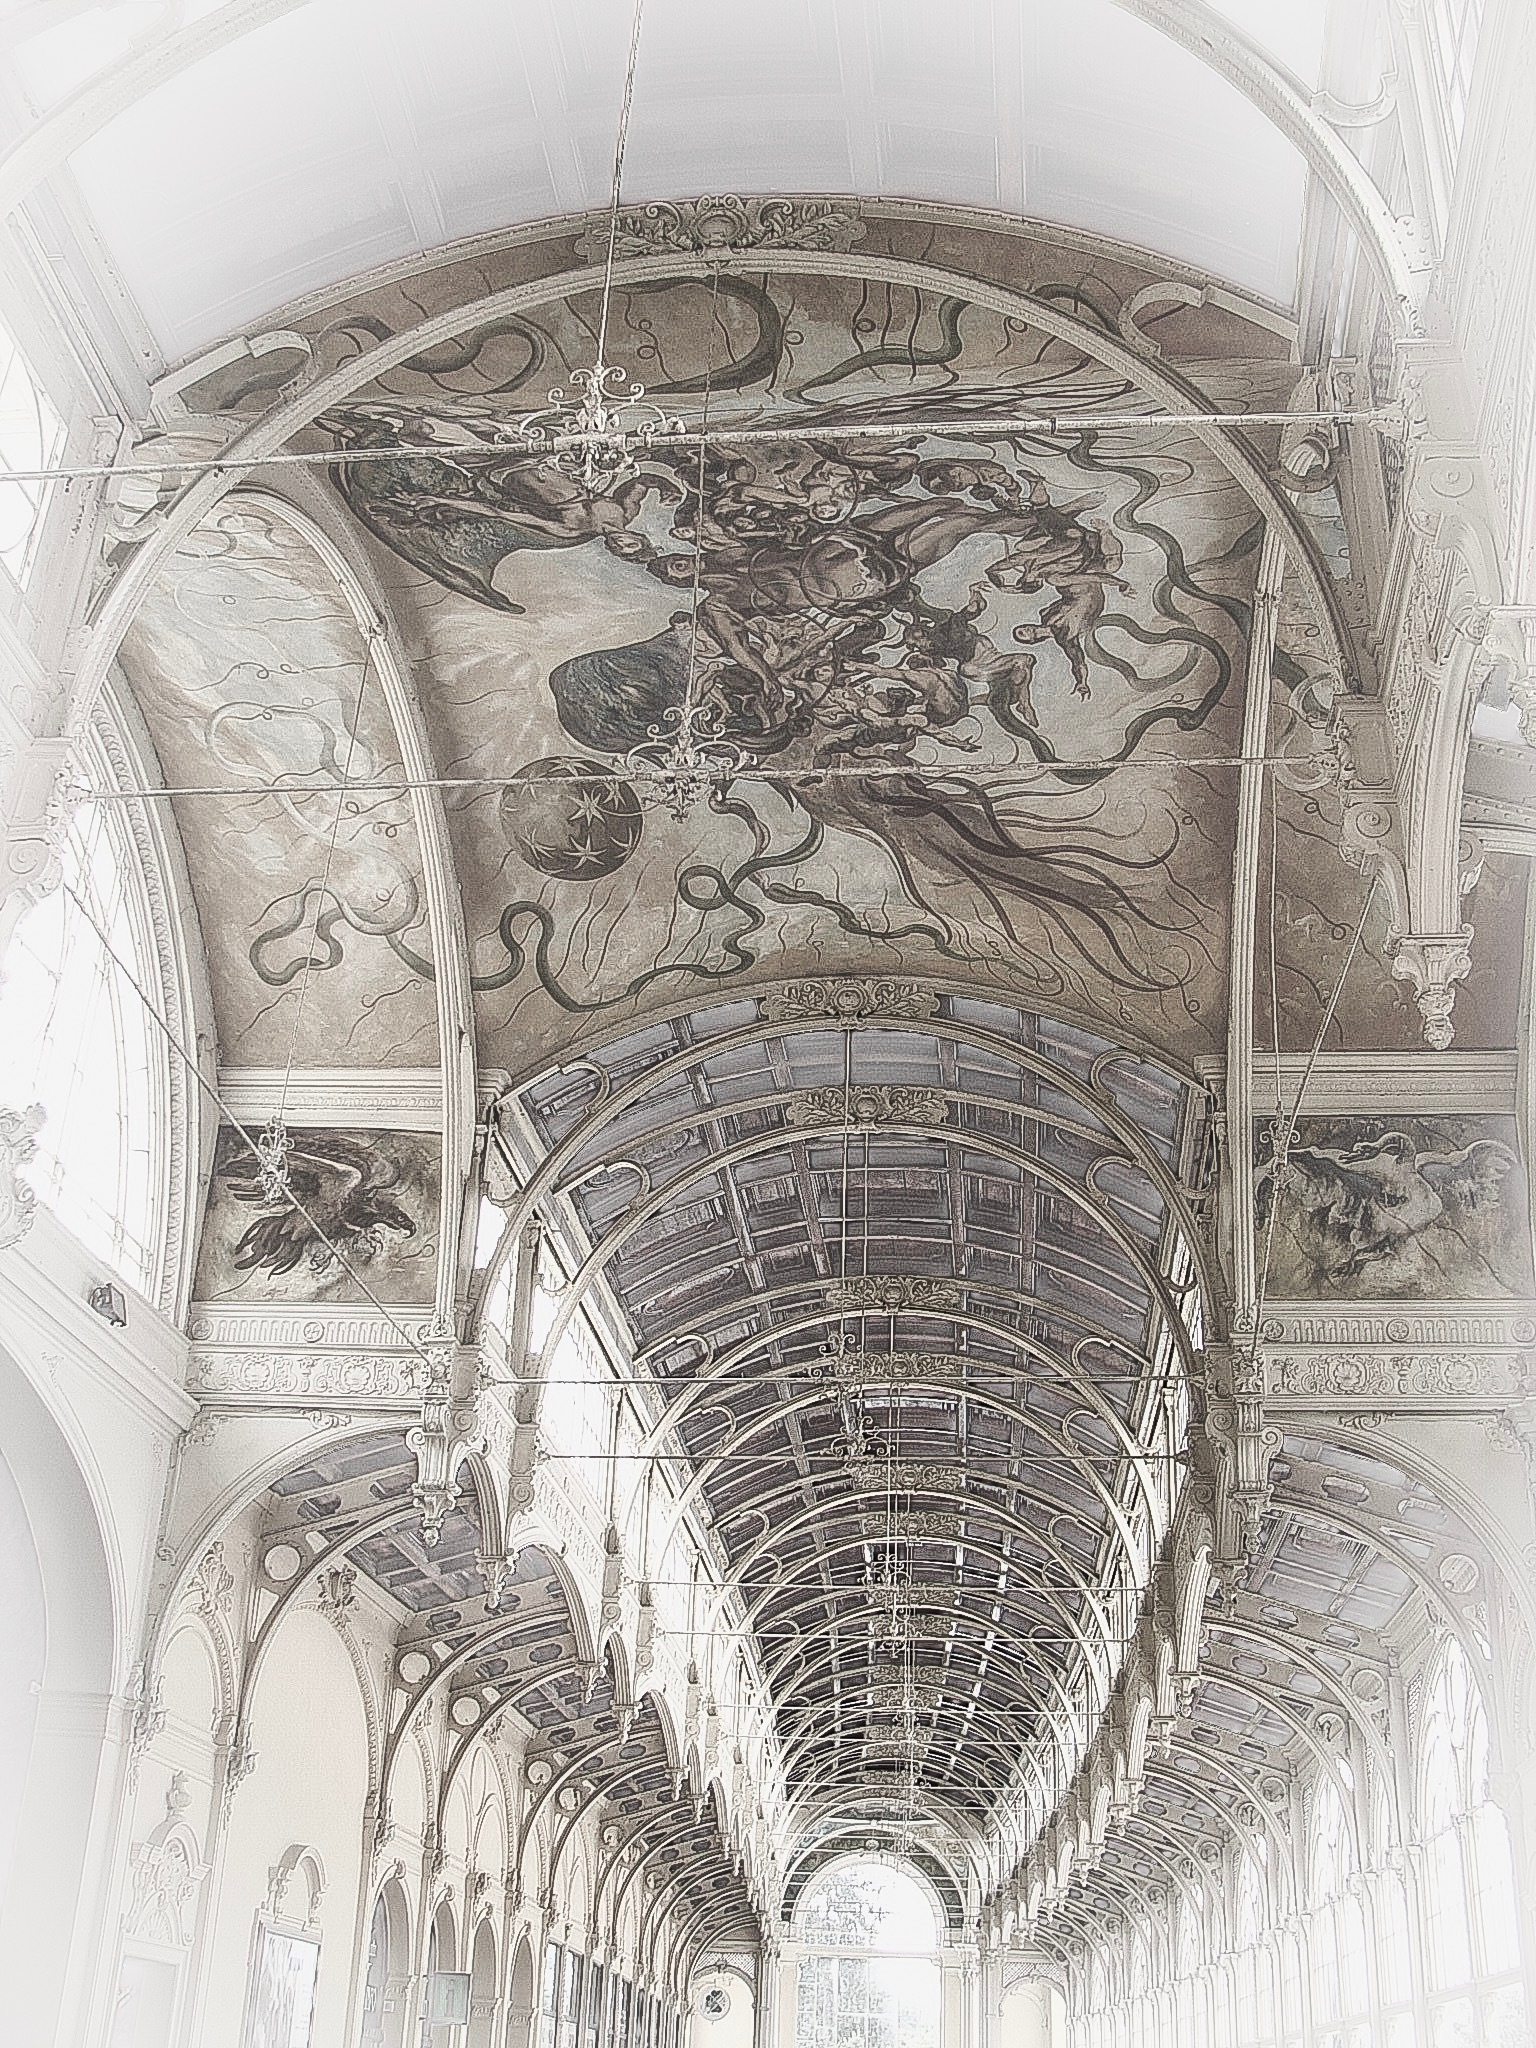 Karlovy Vary walk through the past by Hector Lopez